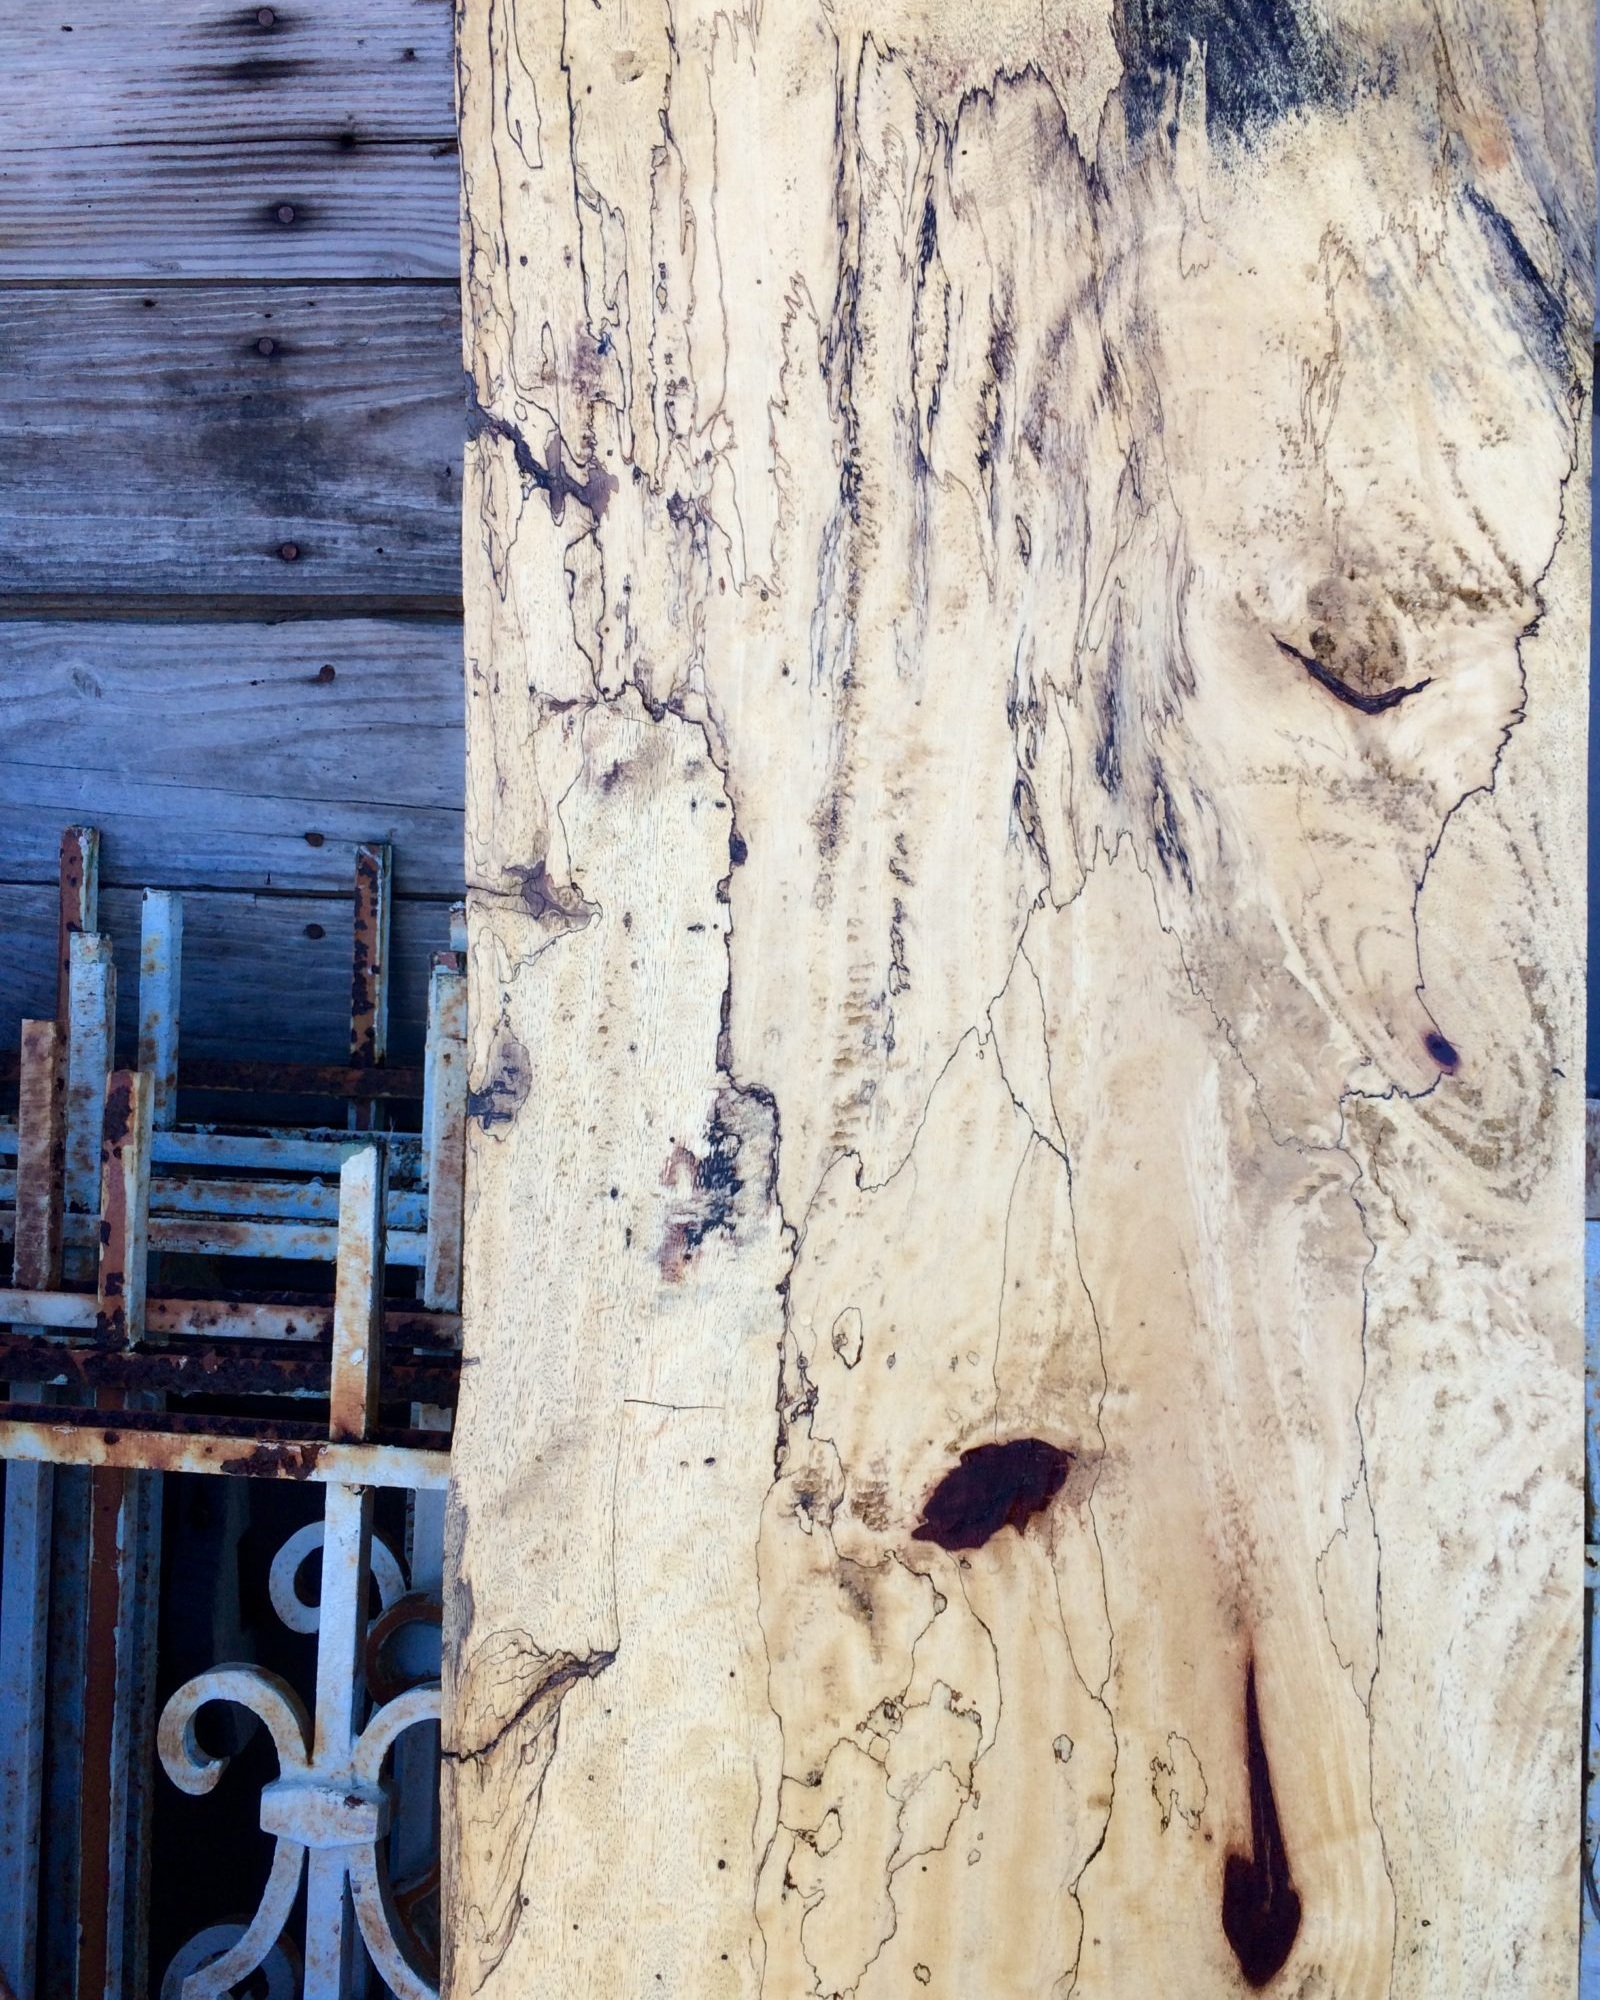 SPALTED TAMARIND - Spalted Tamarind is another one of our exotic woods from Sri Lankan rain forest. The spalting occurs due to a fungus that grew in the tree.